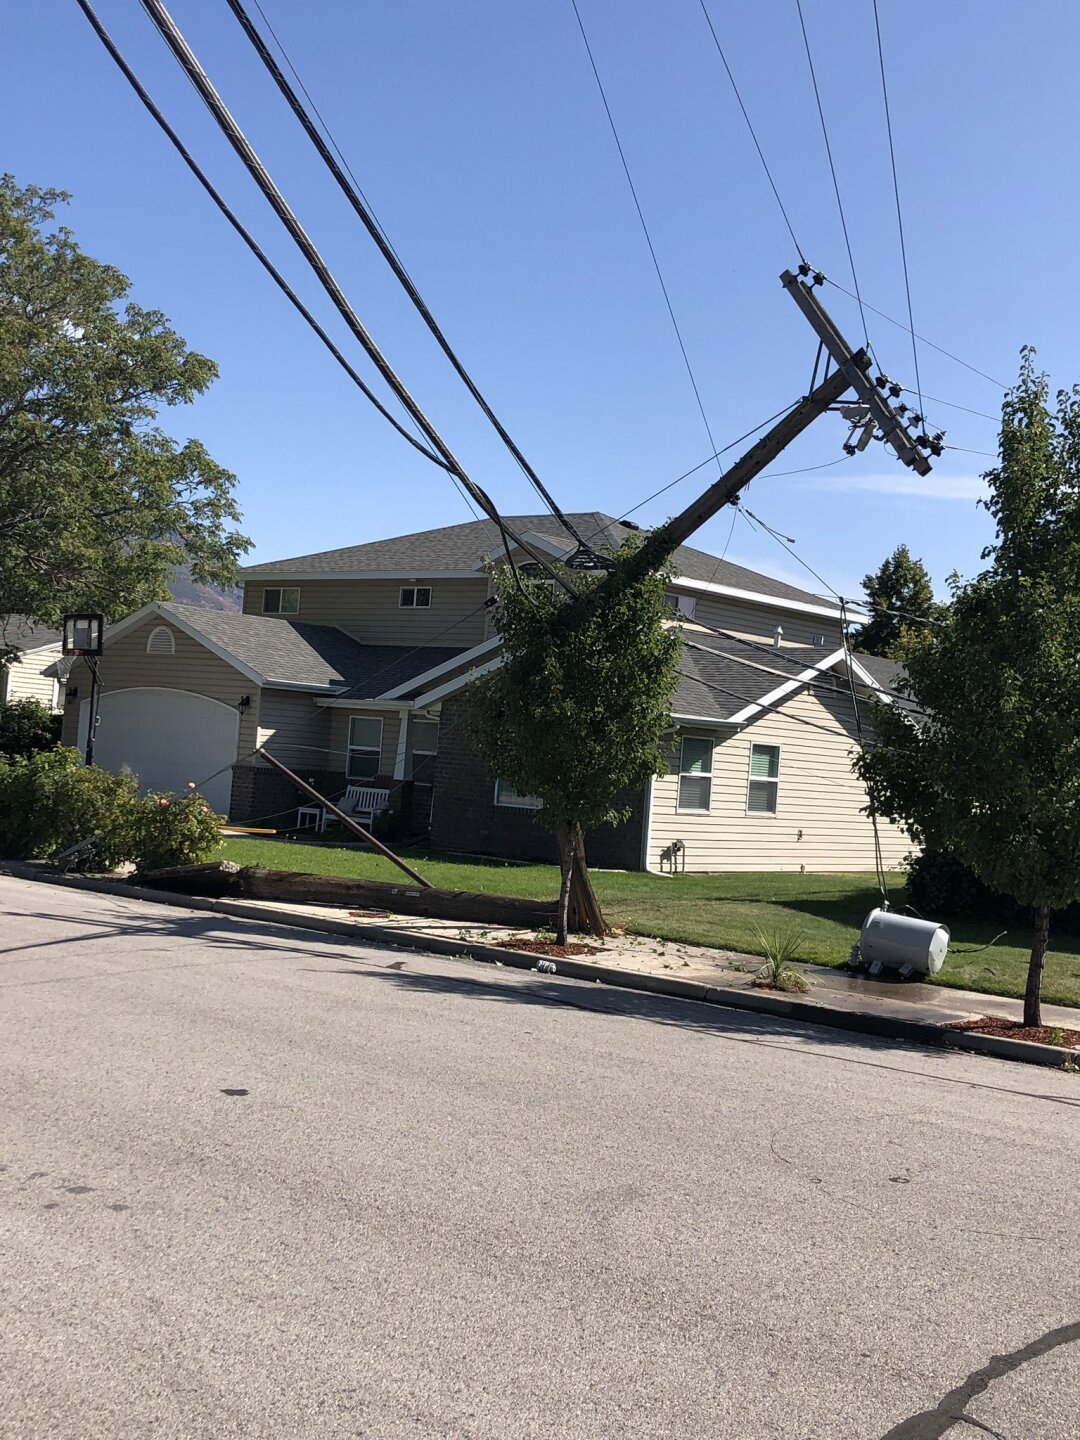 Photos: Dump truck damages 10 power poles in Provo neighborhood